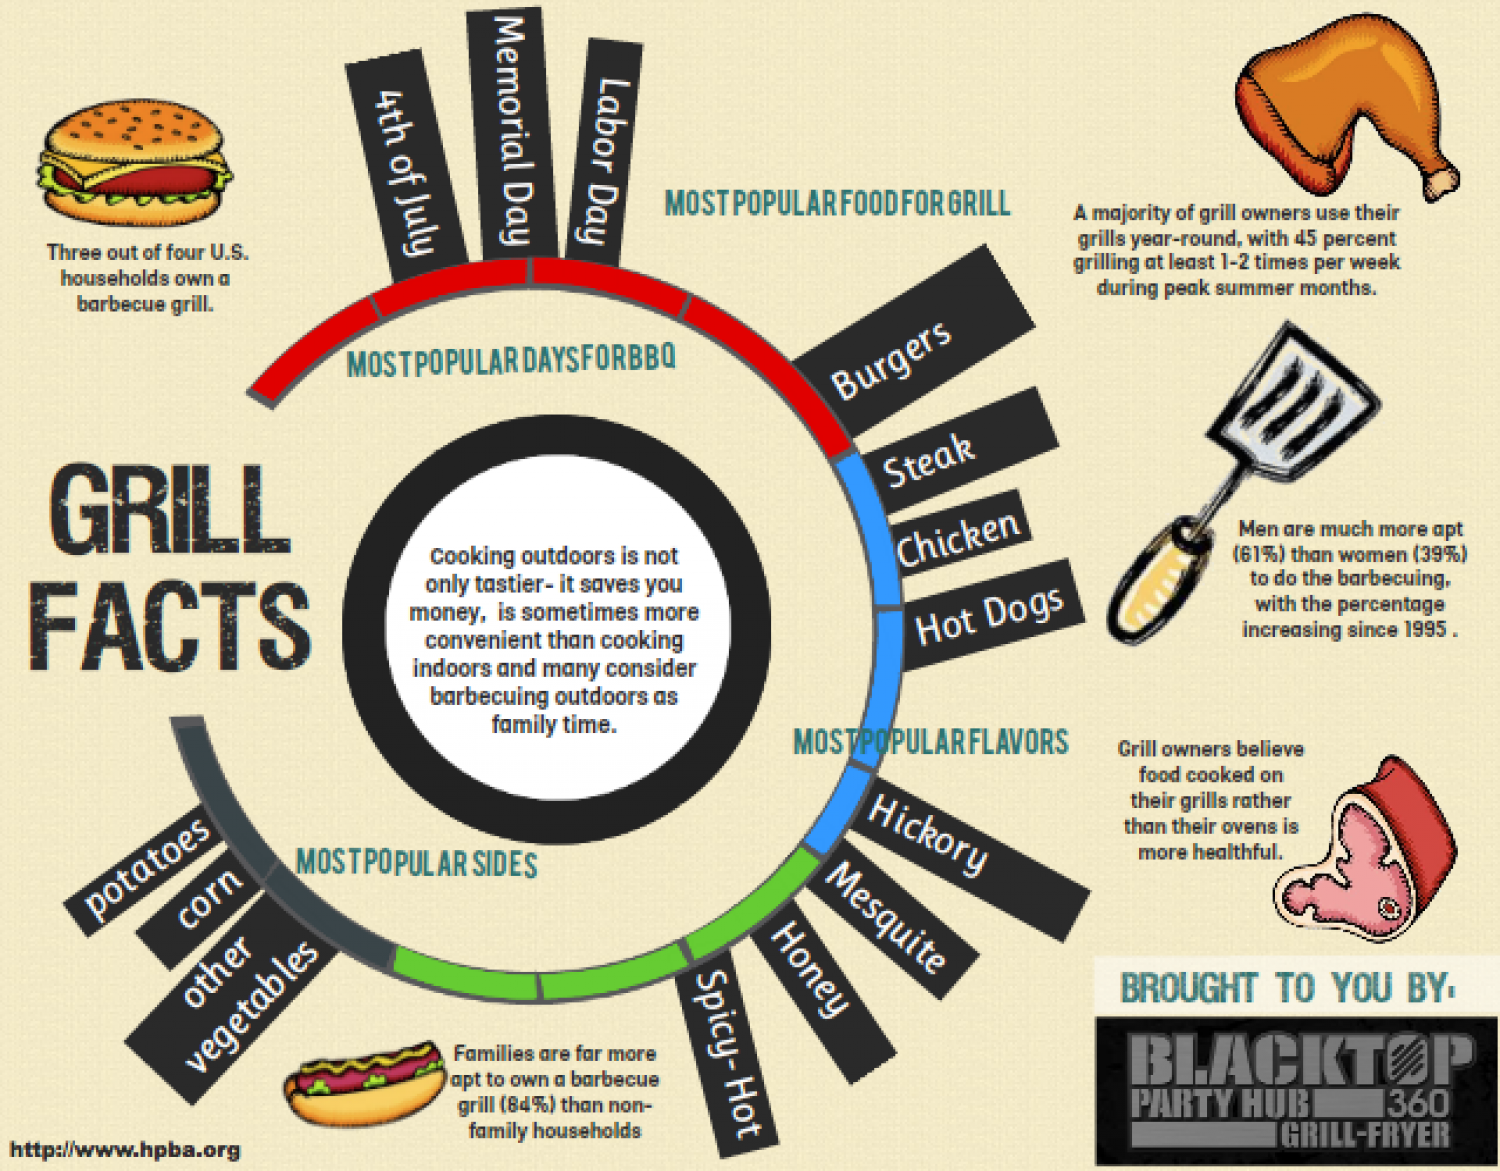 Grilling Facts Infographic